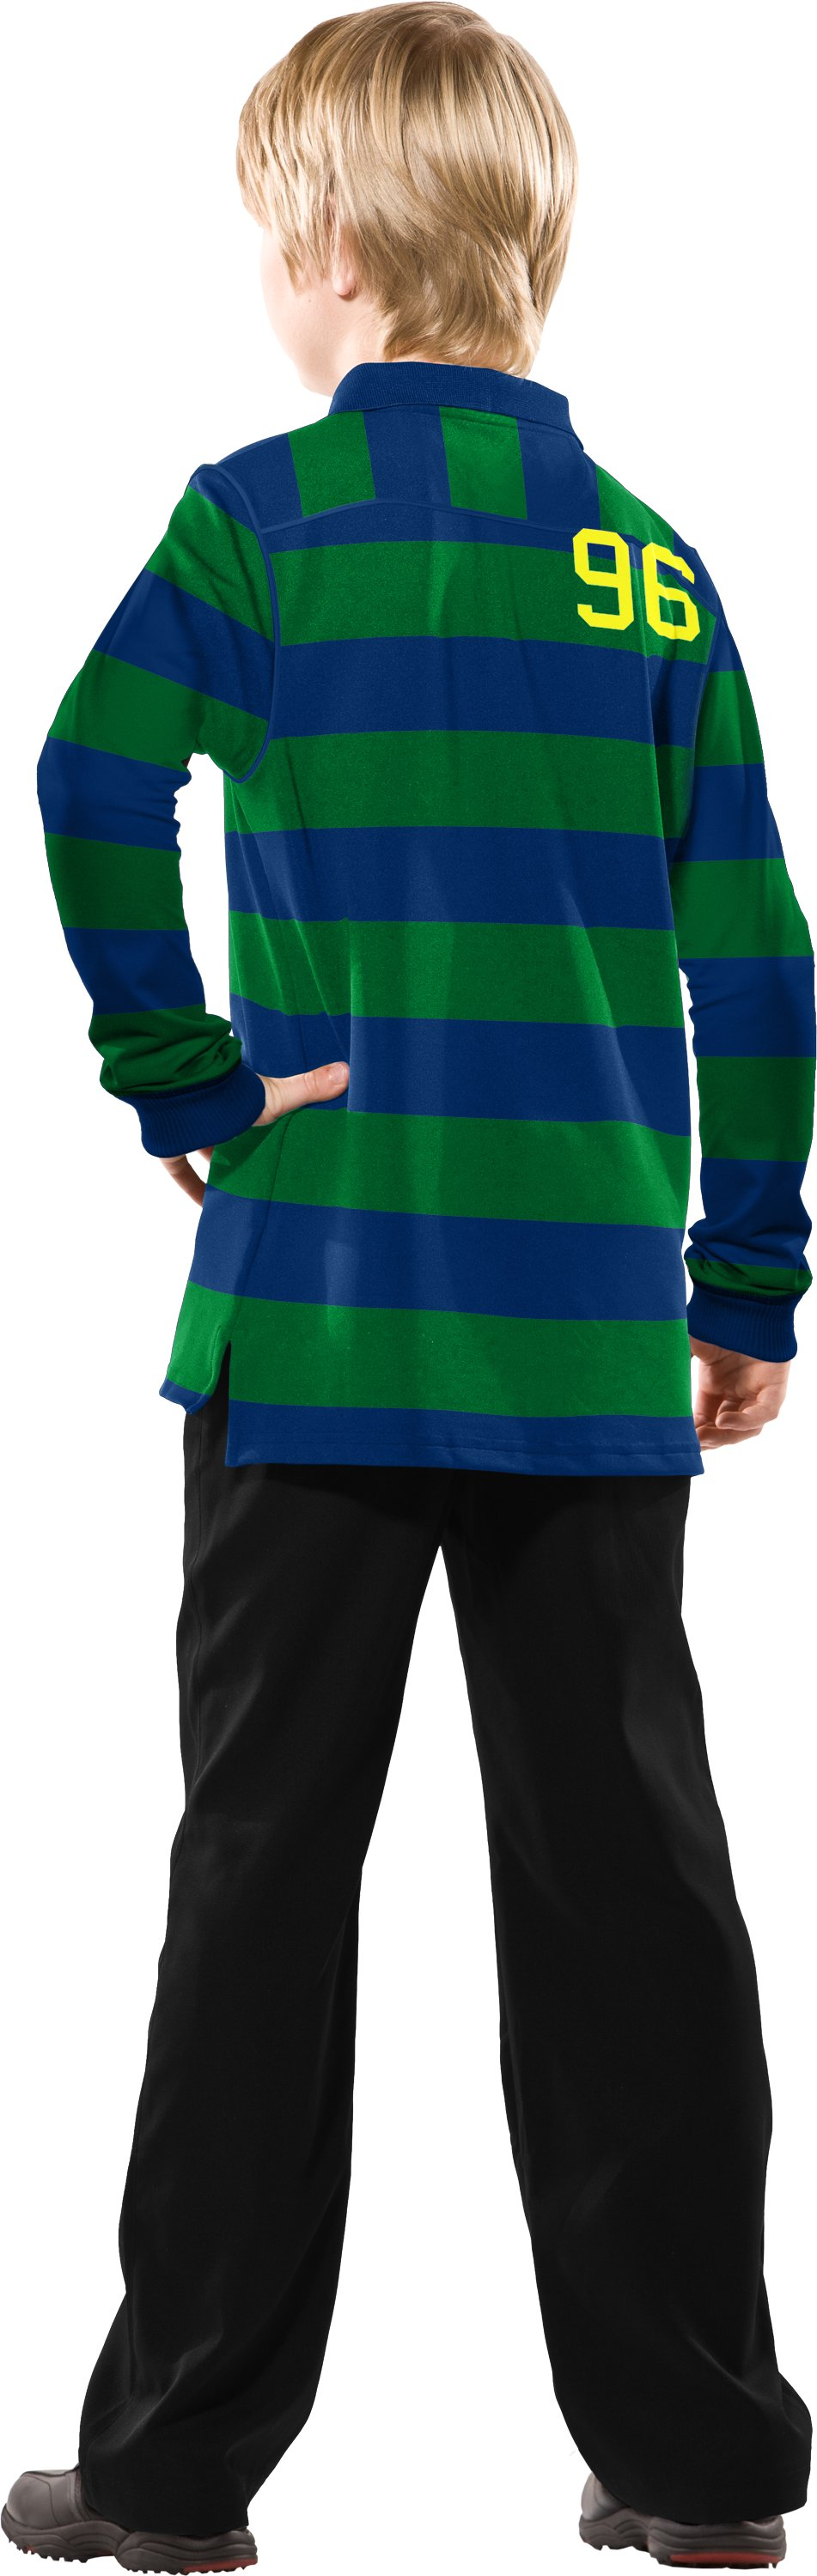 Boys' Long Sleeve 96 Rugby Shirt, Feisty, Back